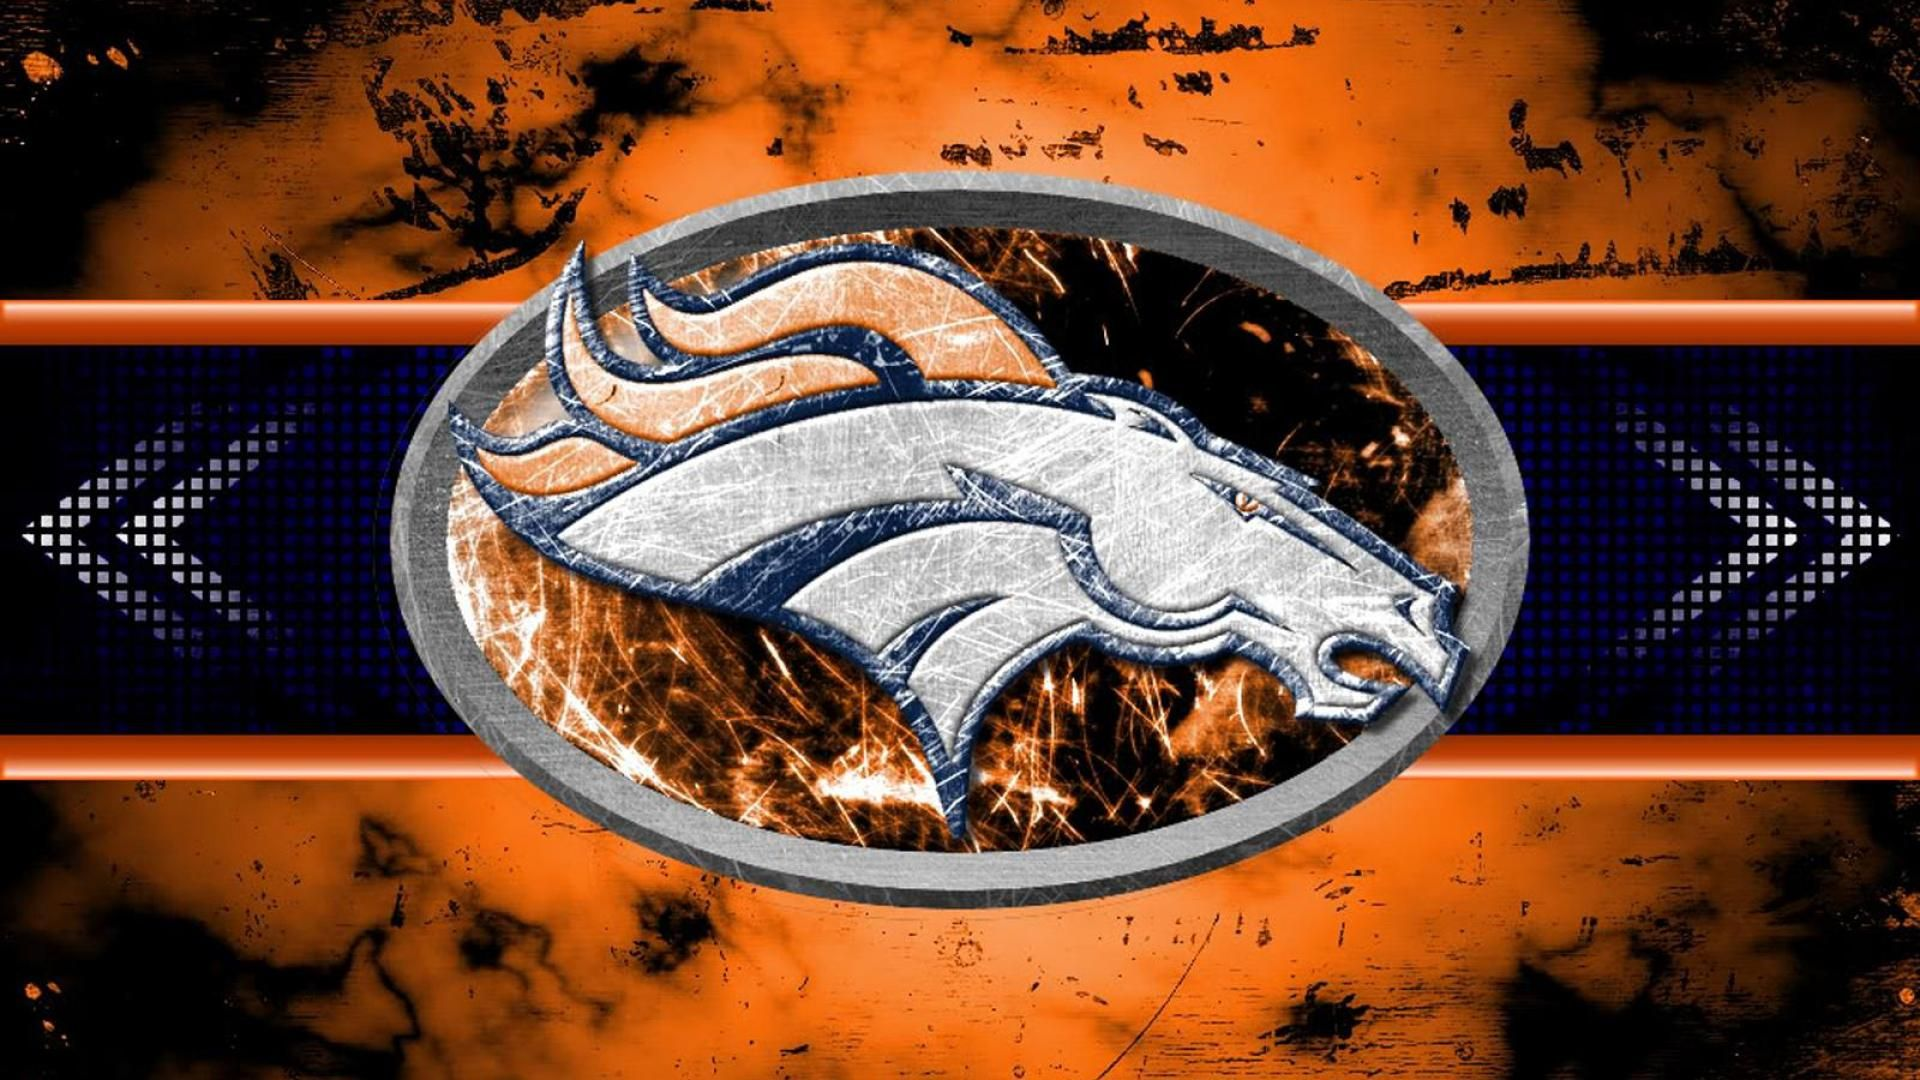 Denver broncos wallpapers images photos pictures backgrounds hd denver broncos wallpapers images photos pictures backgrounds hd wallpapers pinterest broncos wallpaper and wallpaper biocorpaavc